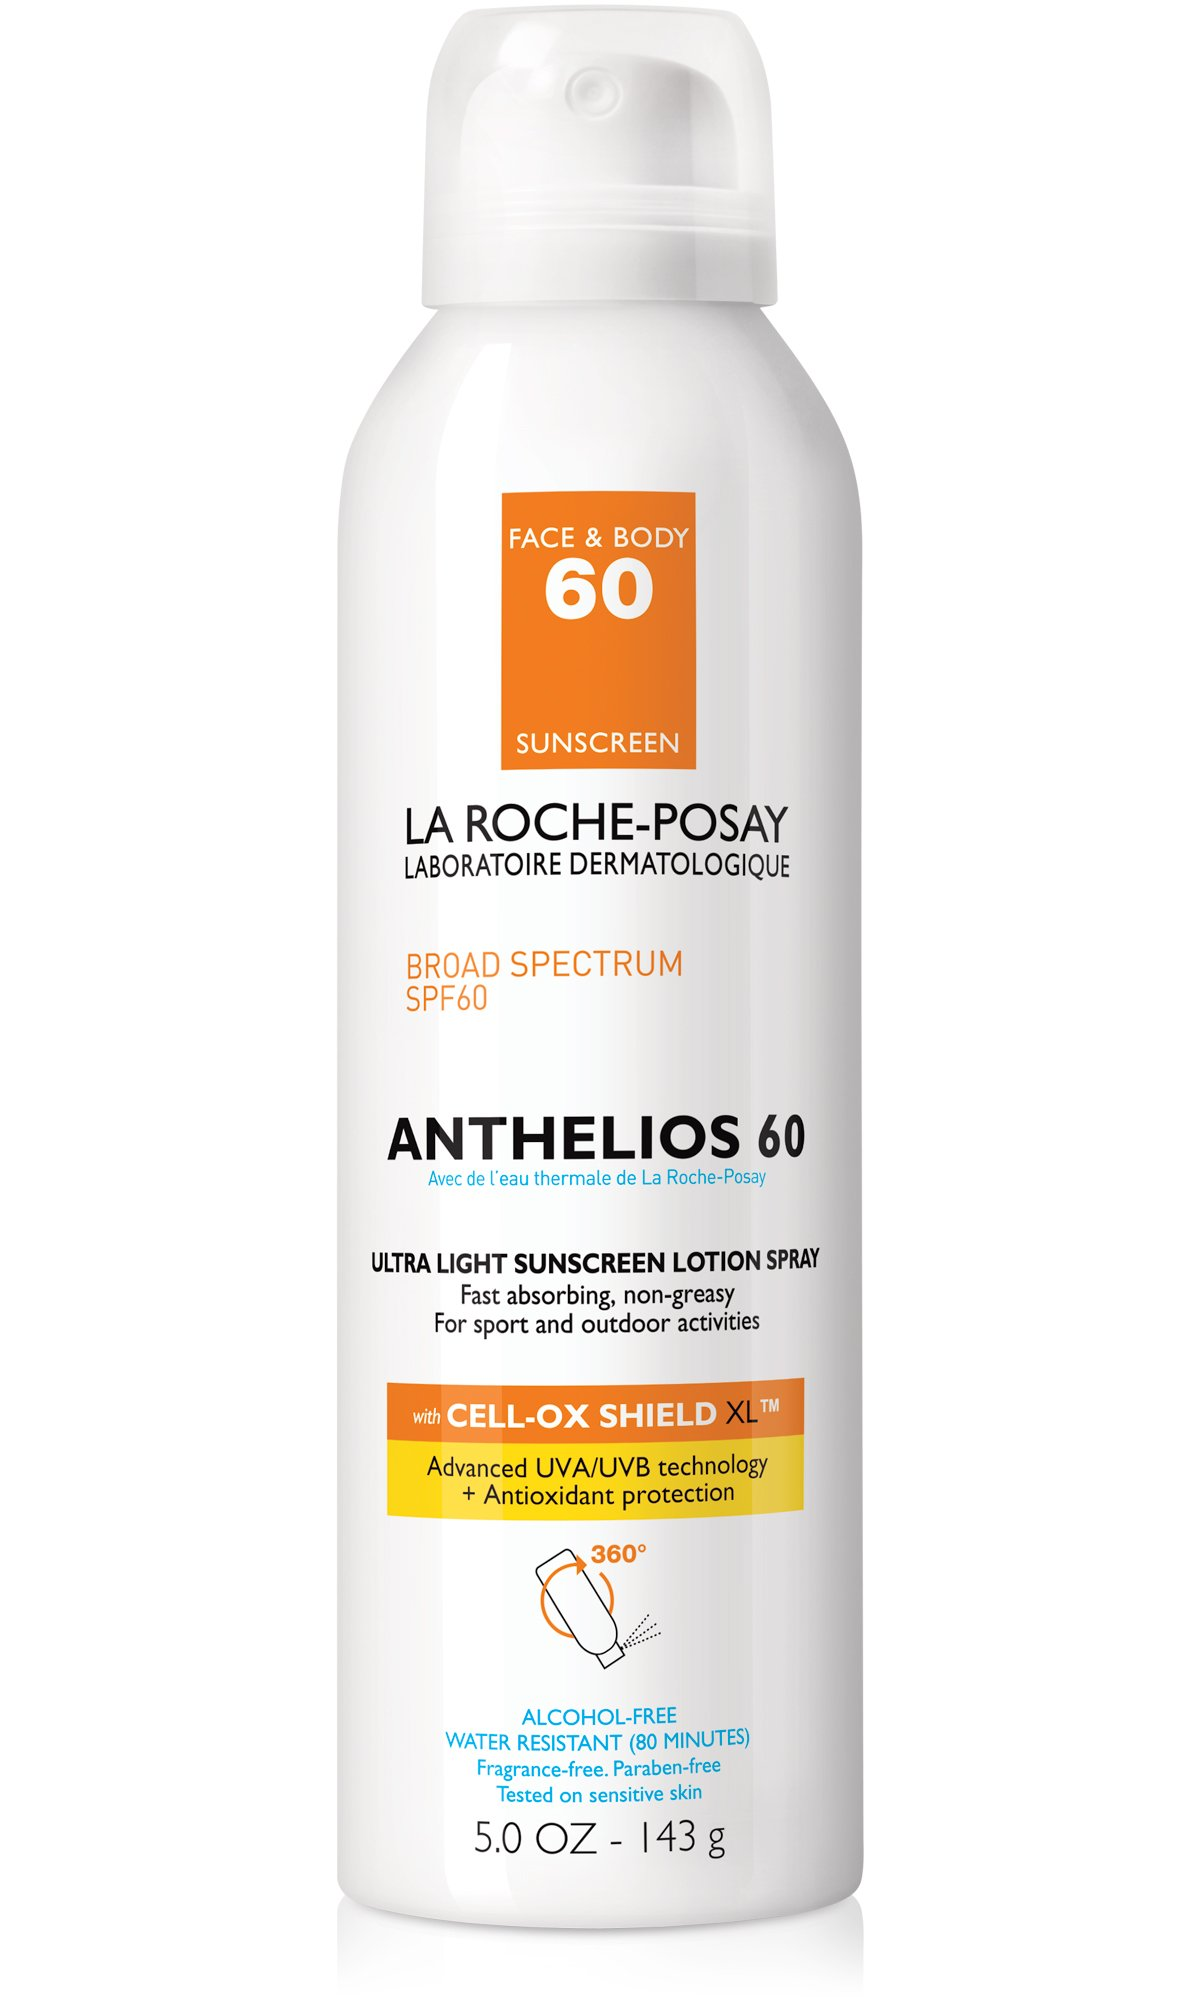 La Roche-Posay Anthelios Ultra-Light Sunscreen Spray Lotion SPF 60, 5 Fl. Oz.